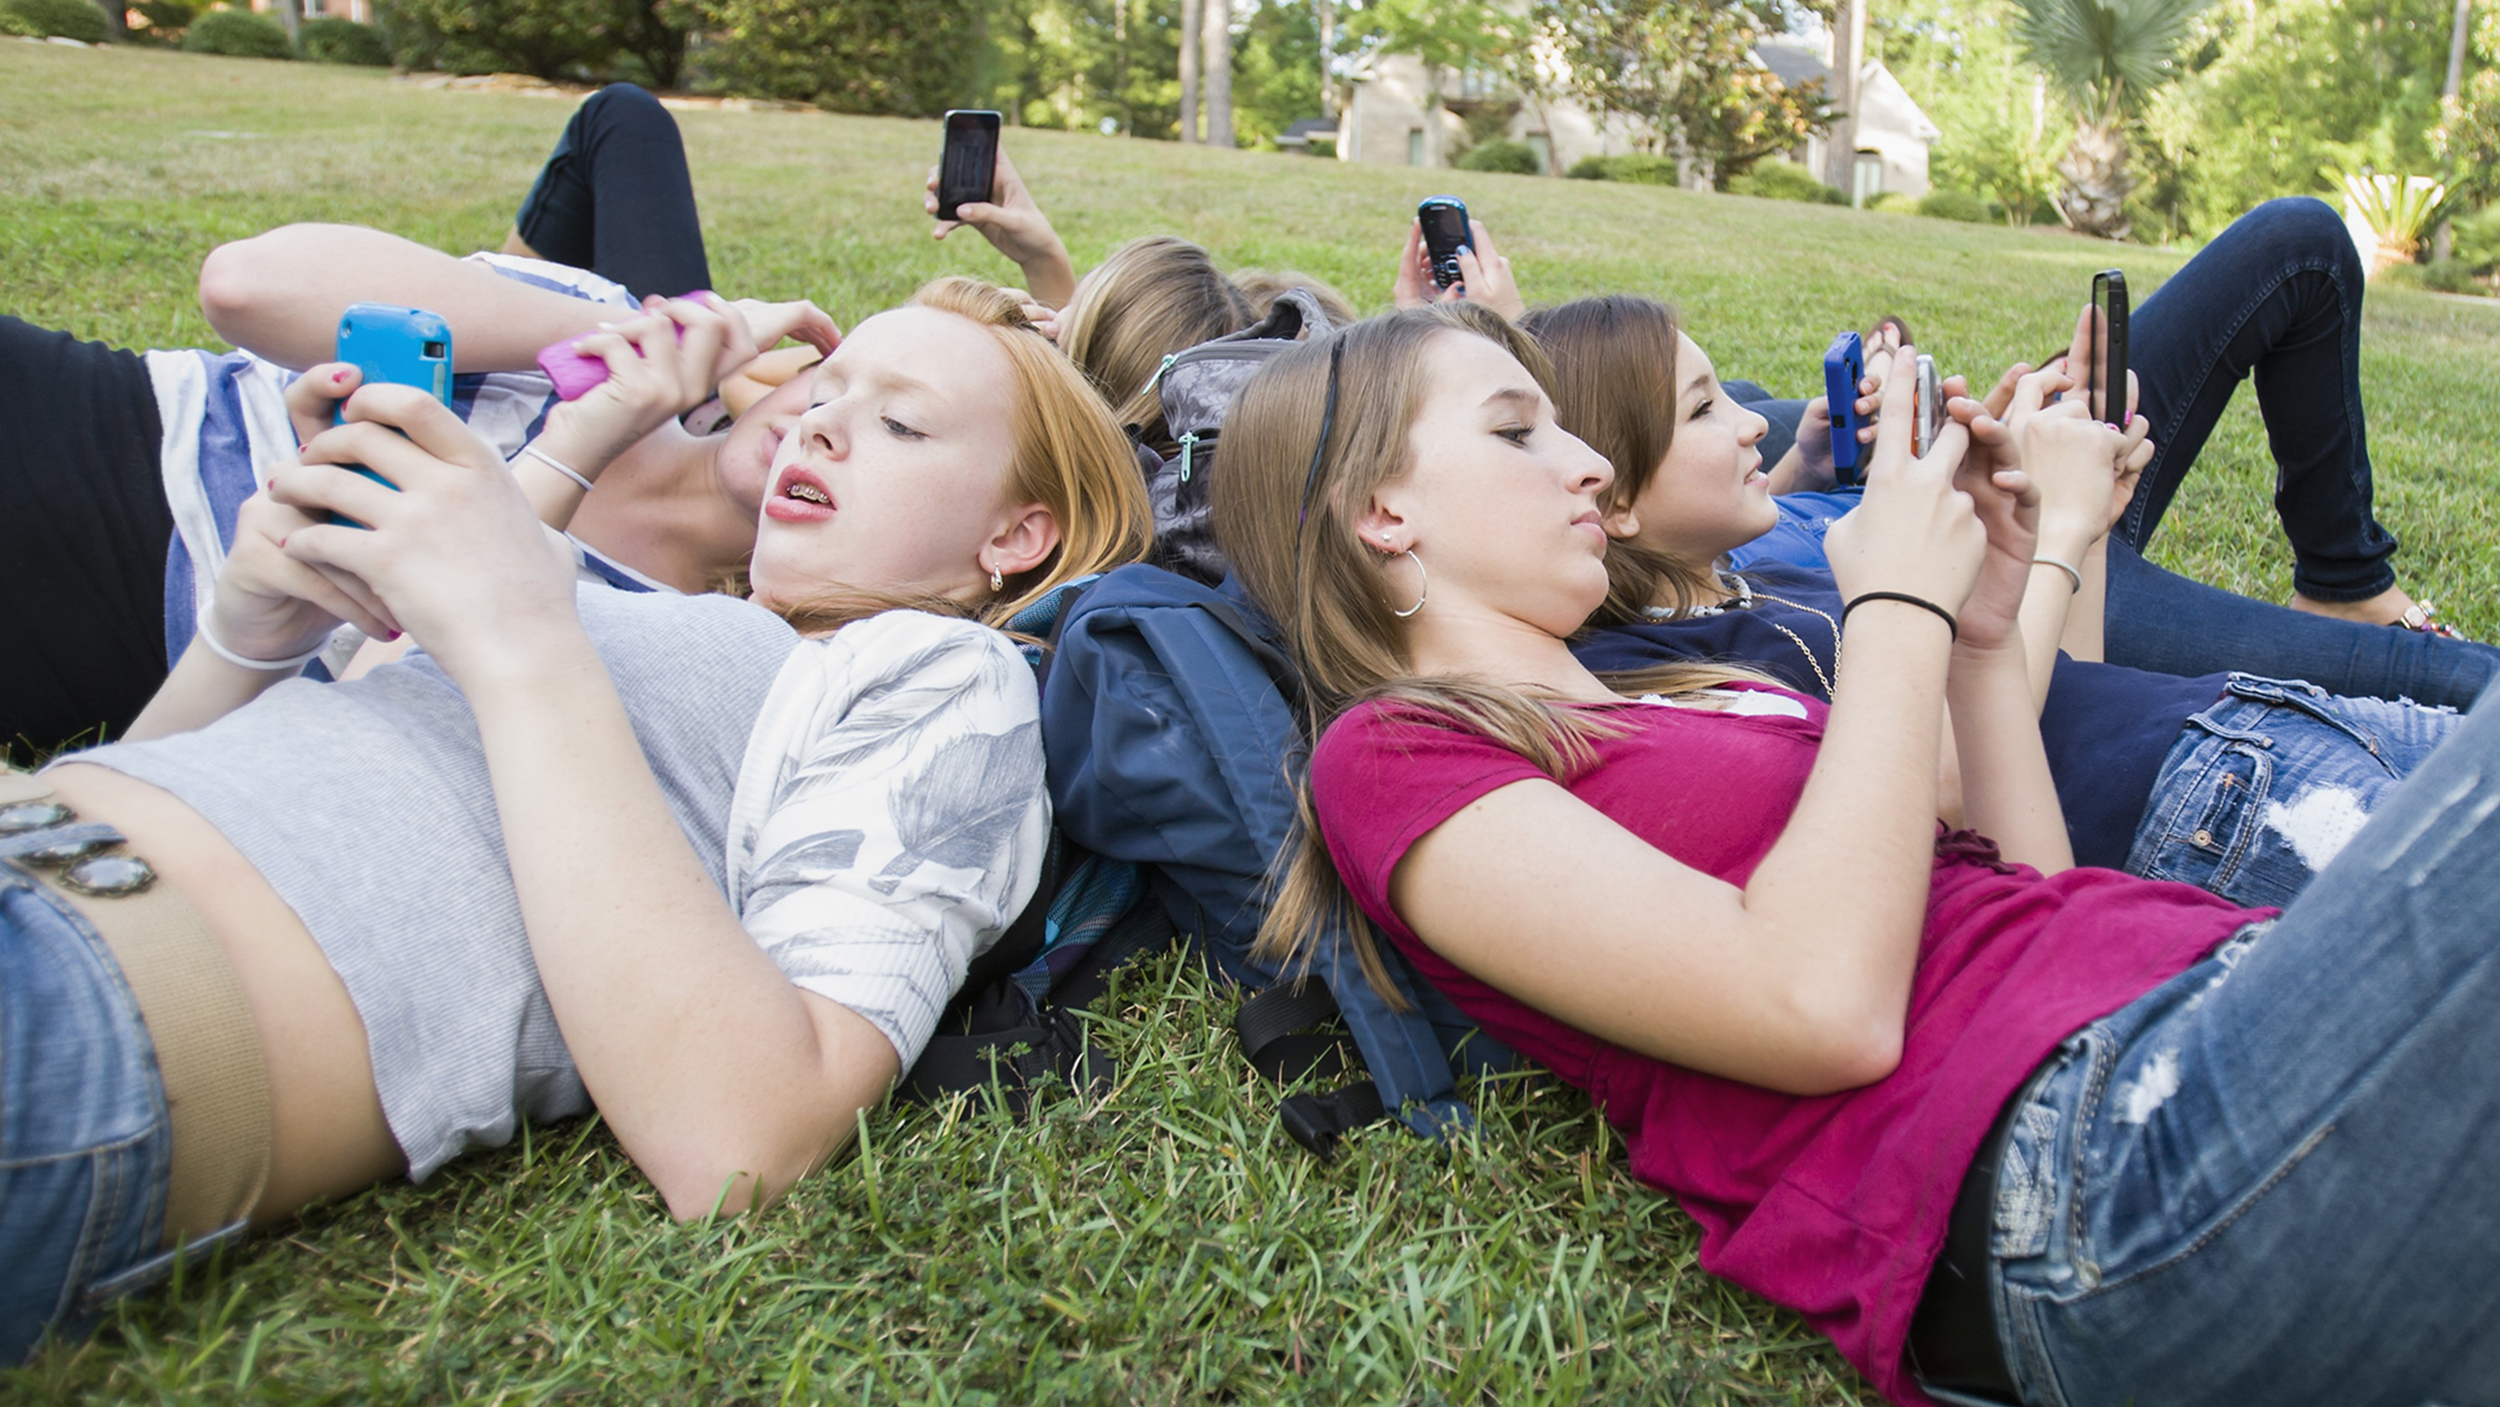 Heavy social media use affects girls' mental health differently than boys